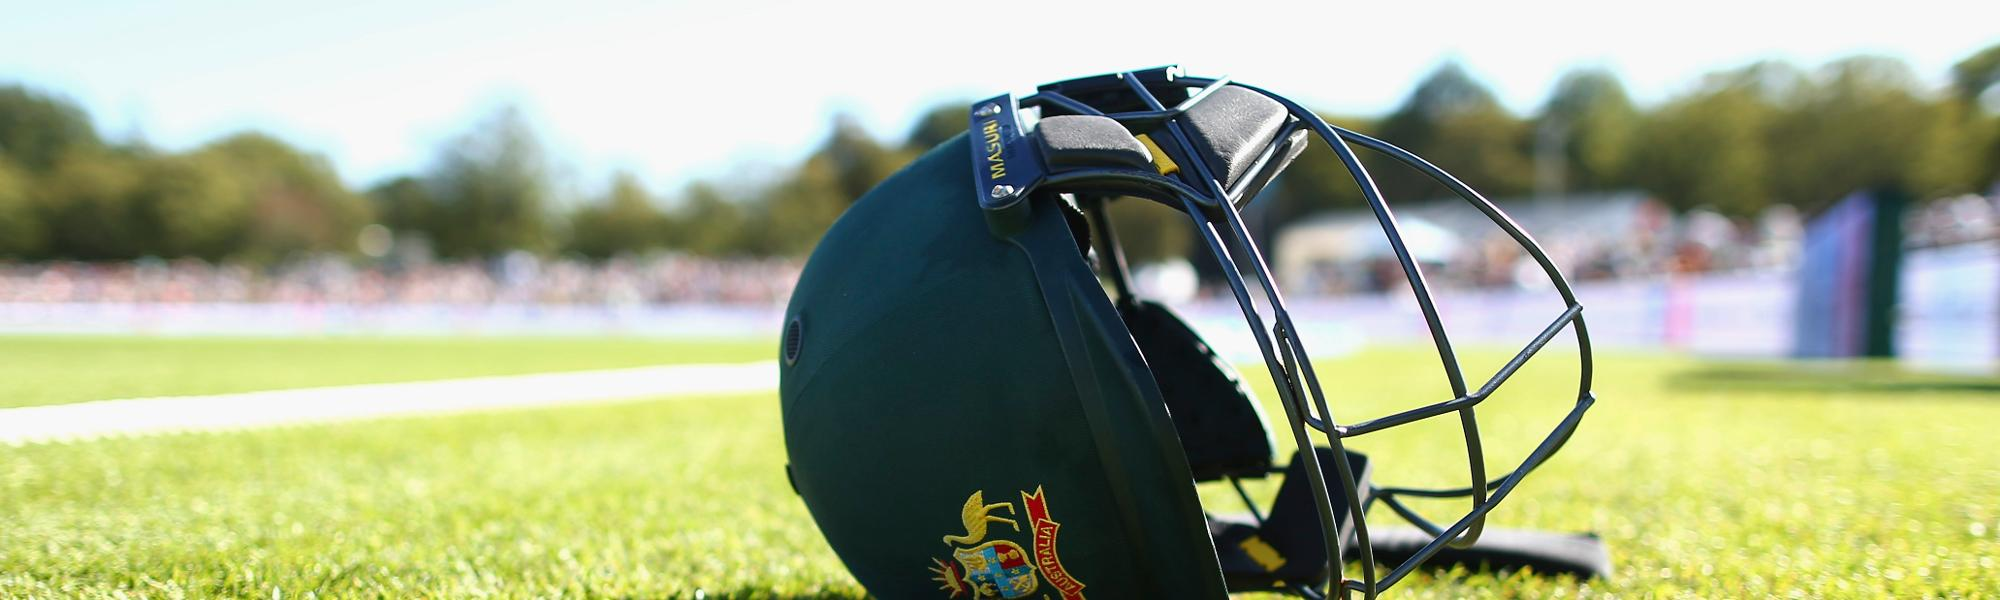 Sanctions will be applied to batsmen who wear non-compliant helmets after 1 February.